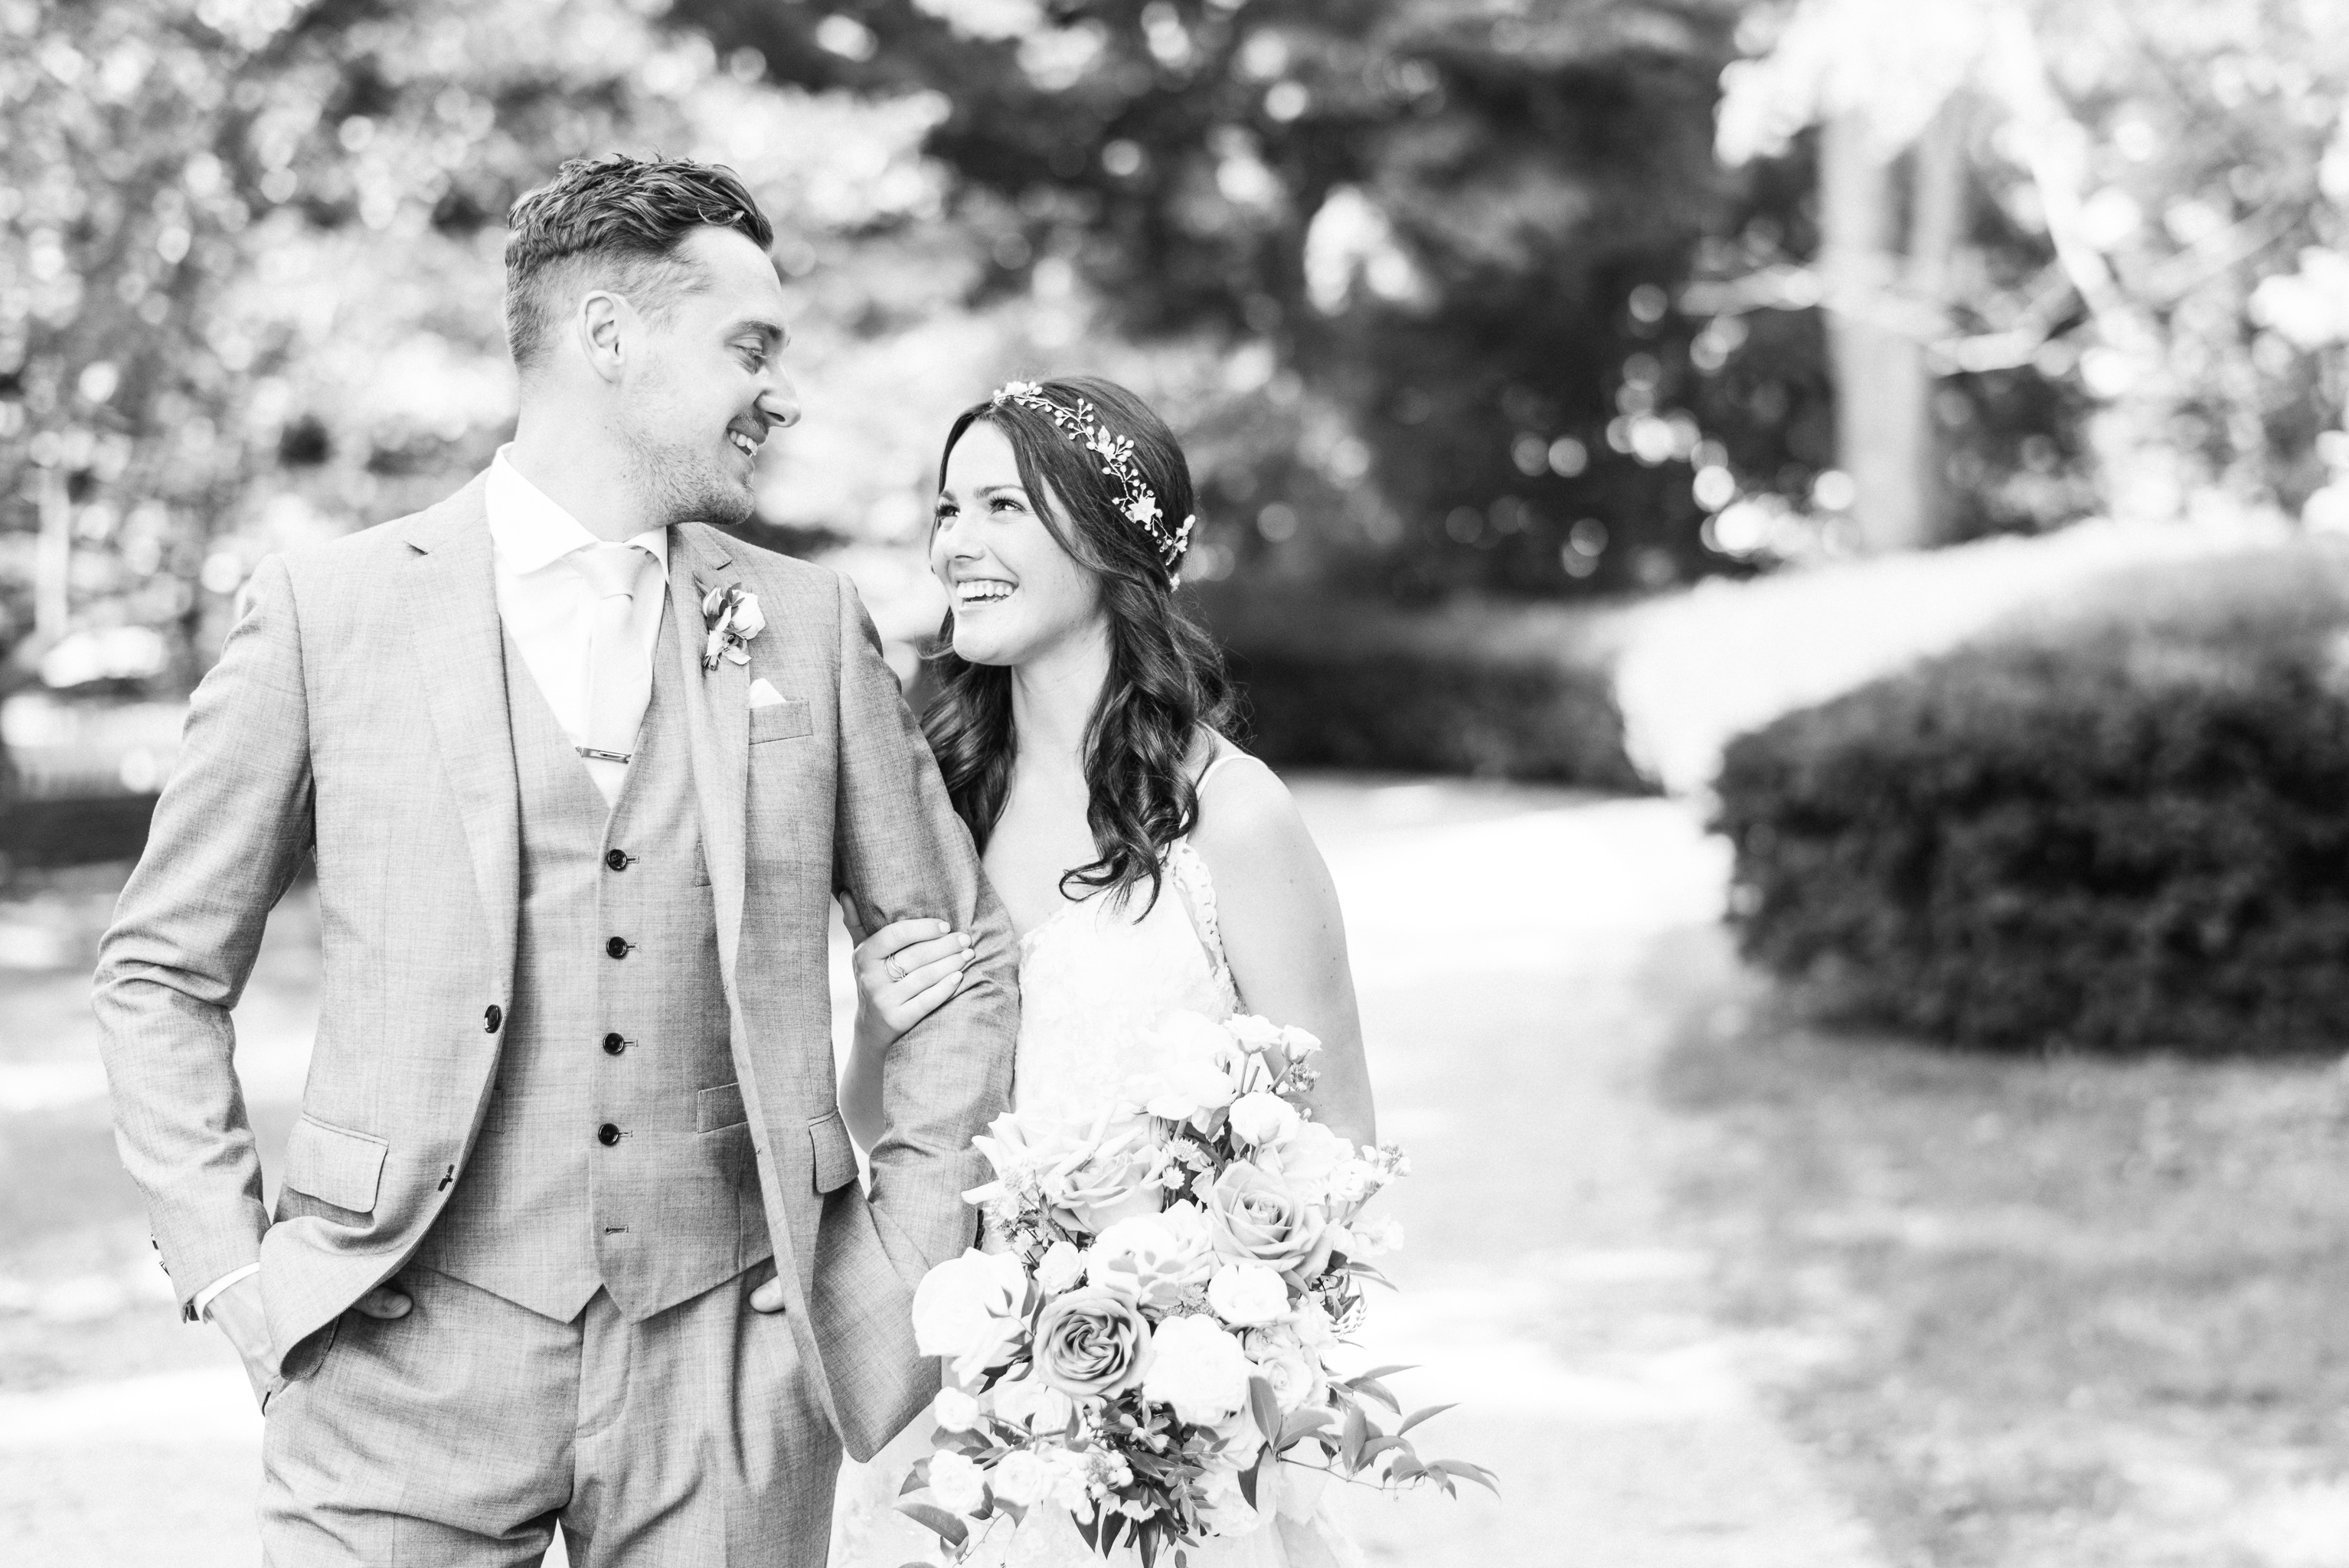 Bride and Groom Portraits at Gracewood Estates by Jenn Kavanagh Photography | Kurtz Orchards Wedding